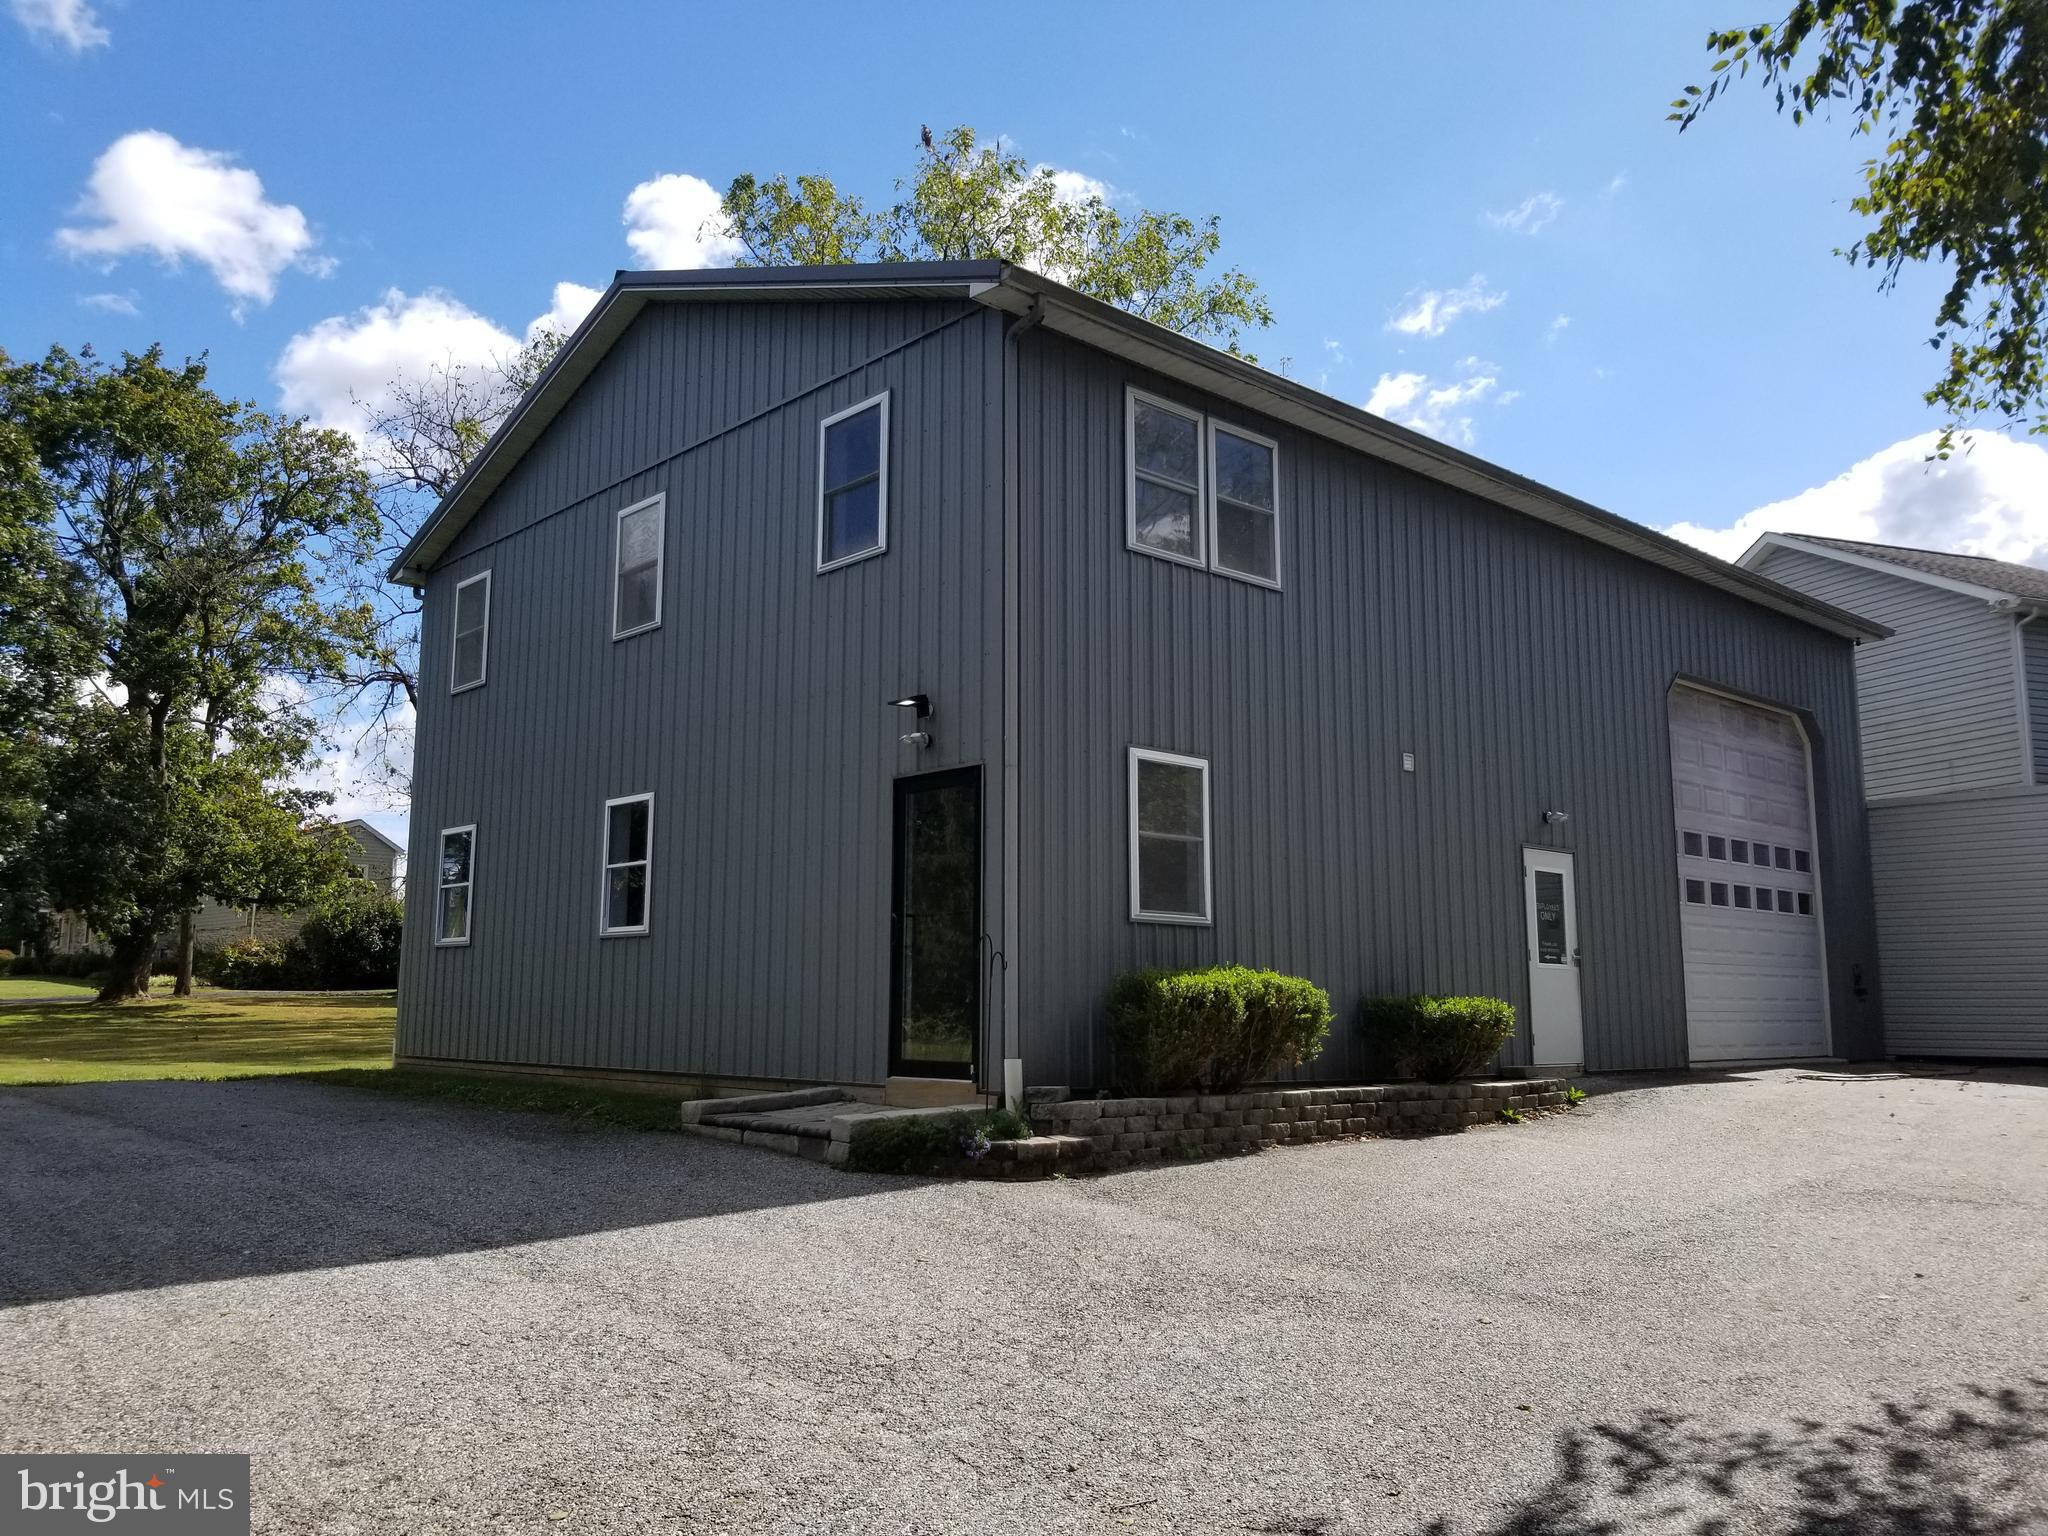 Great location with 1600sf office space and 800sf warehouse space. Offices feature natural lighting and central AC. Radiant flooring throughout the entire building.  200+ AMP service. Separate employee entrance, client entrance lobby door with waiting room/reception area, and drive-in door measuring approx 14'x12'. Kitchen area with countertops and sink. 3 private offices with storage closets and 1 restroom on 2nd floor. First floor features 1 restroom. Rental Area includes building and parking areas. Owner is a PA Licensed REALTOR.